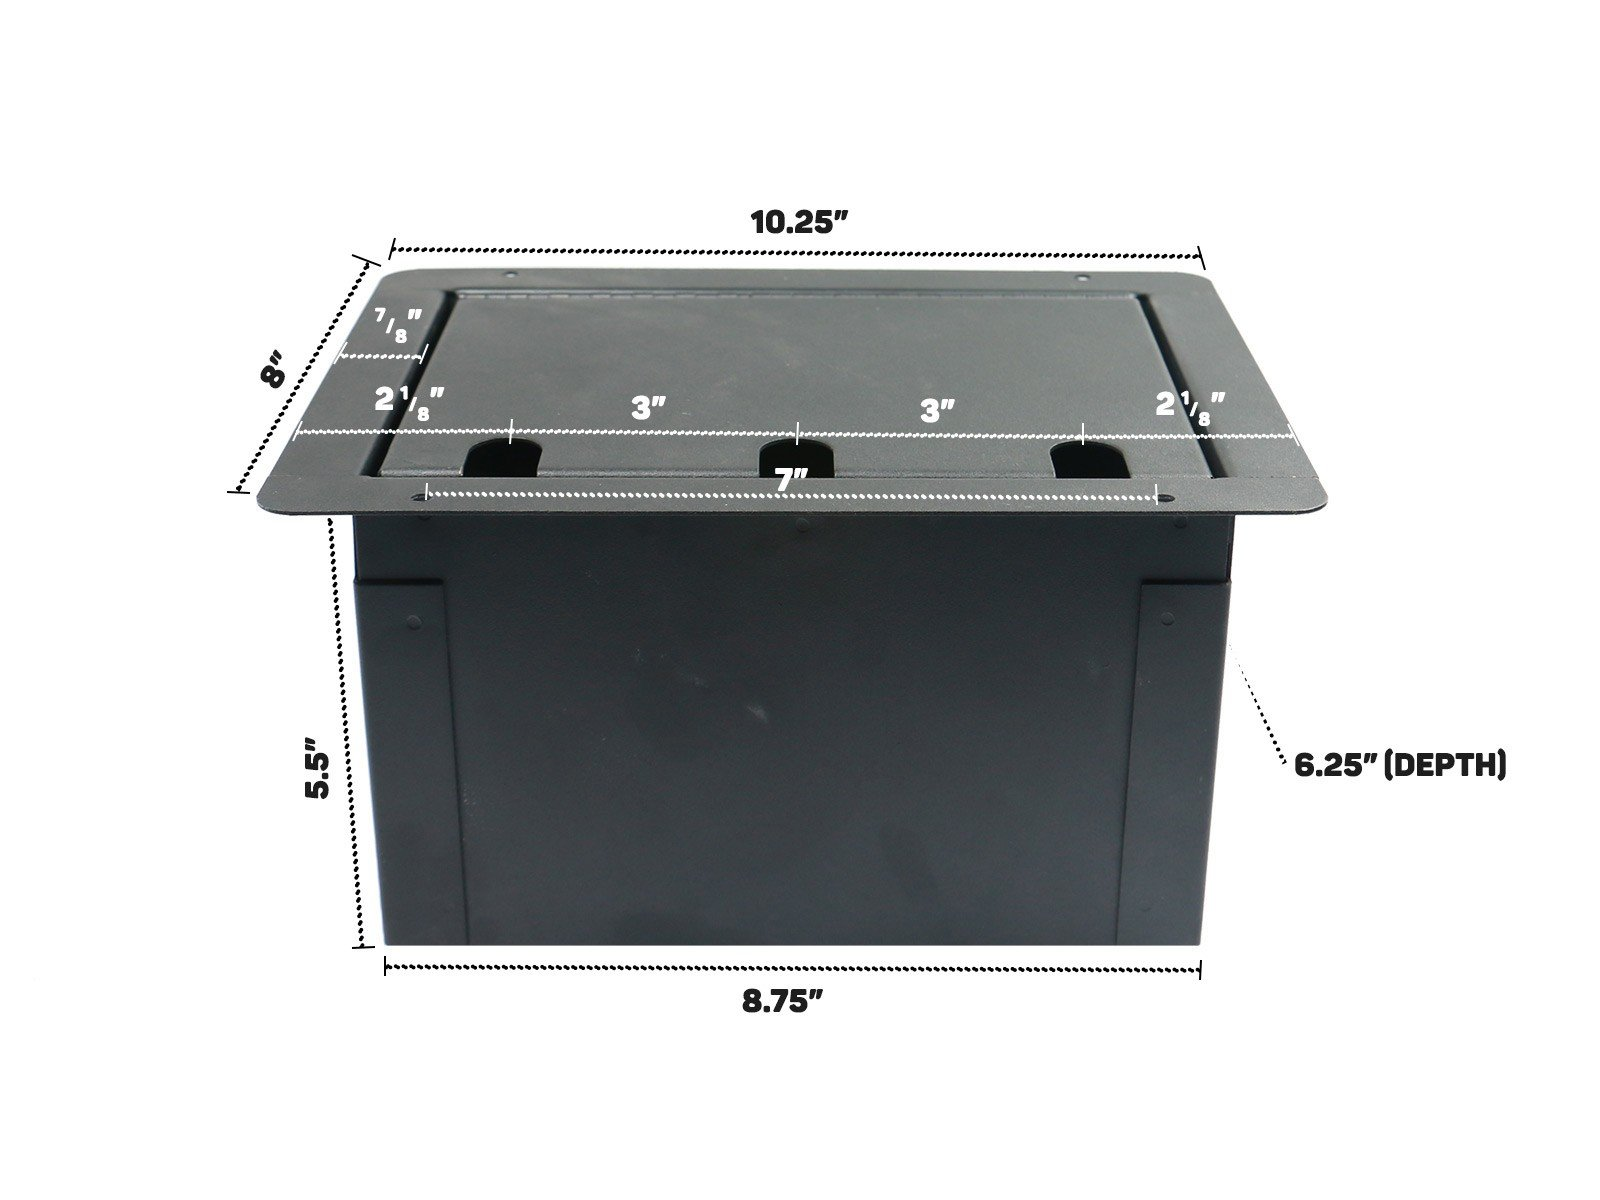 Recessed Floor Box With 8 XLRF + Duplex AC with Back Box